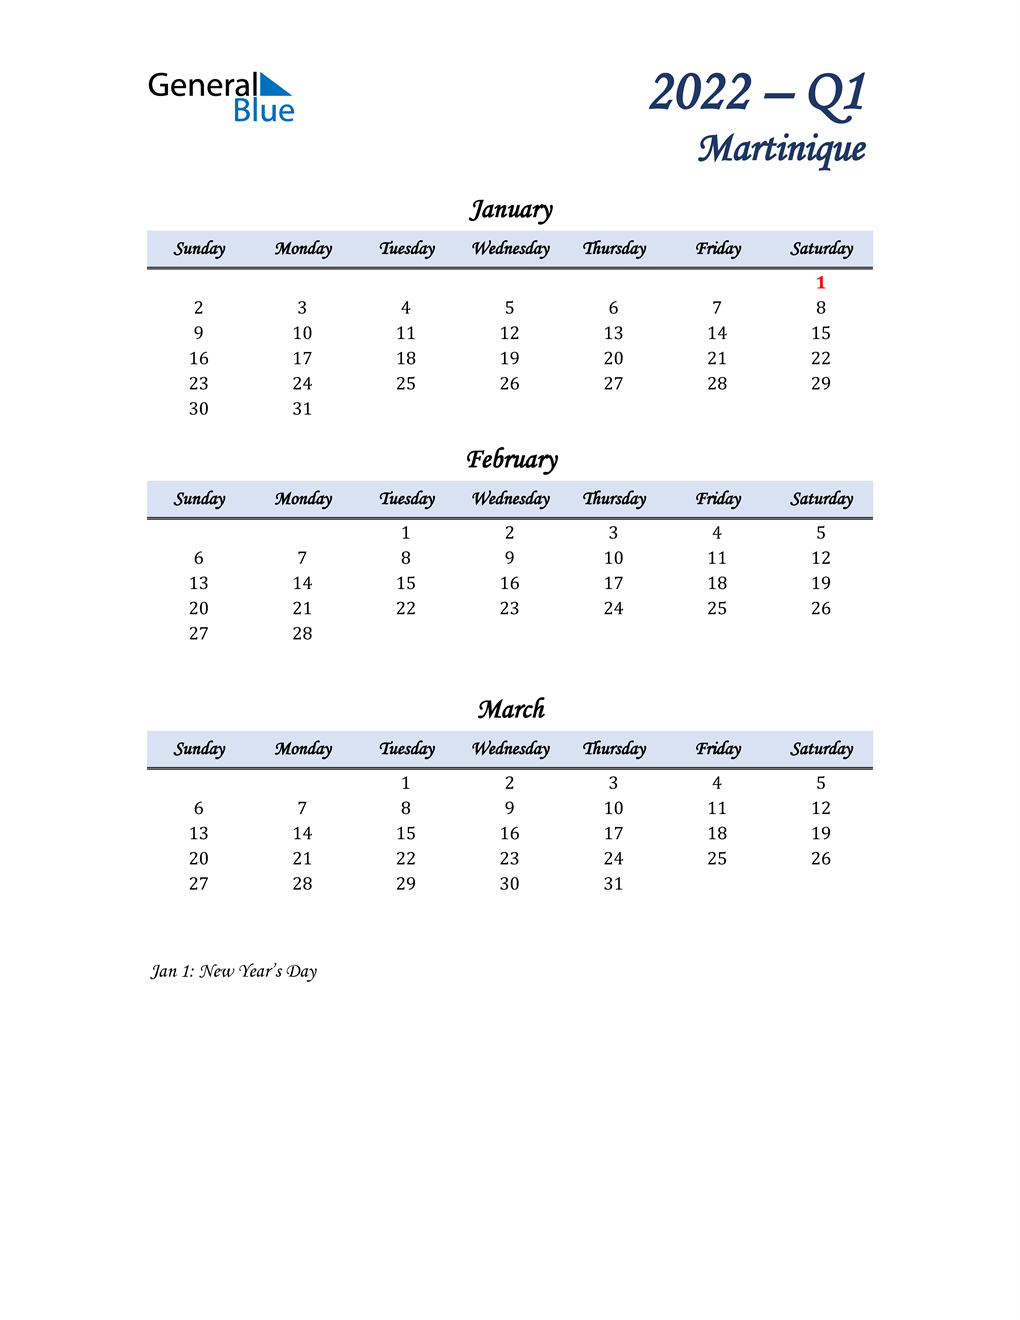 January, February, and March Calendar for Martinique